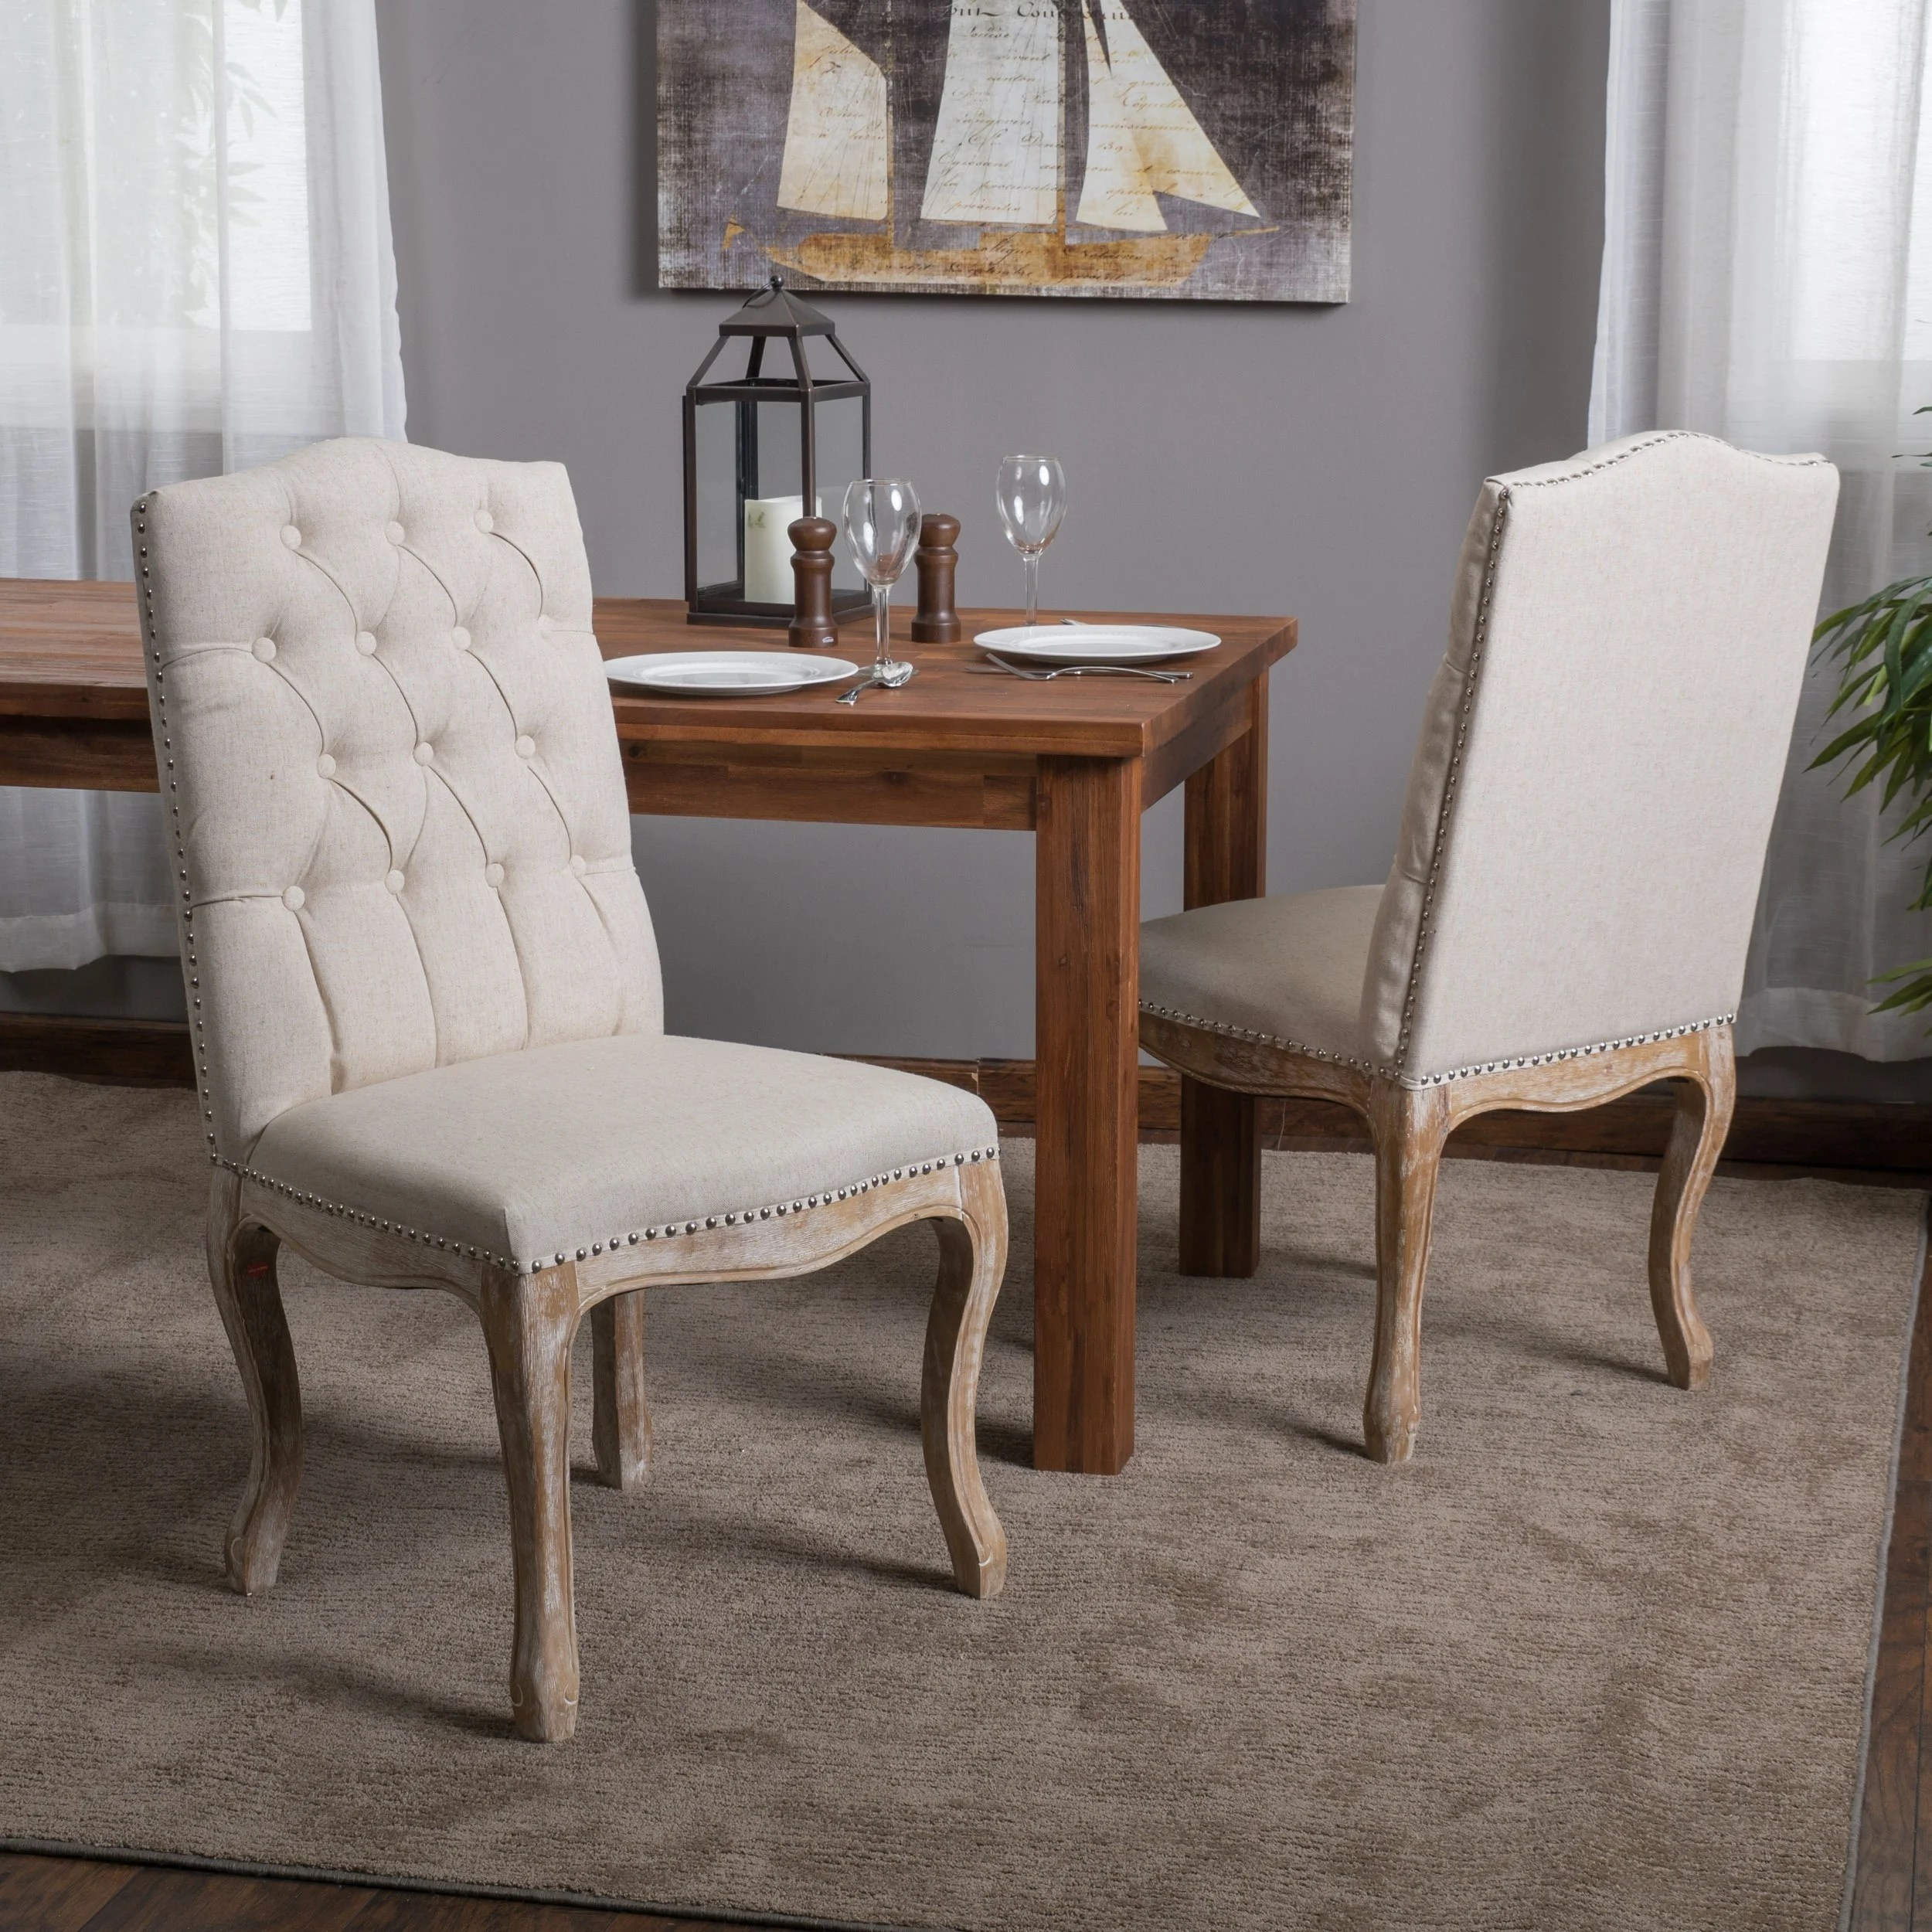 Studded Dining Chairs Weathered Hardwood Studded Beige Dining Chair By Christopher Knight Home Set Of 2